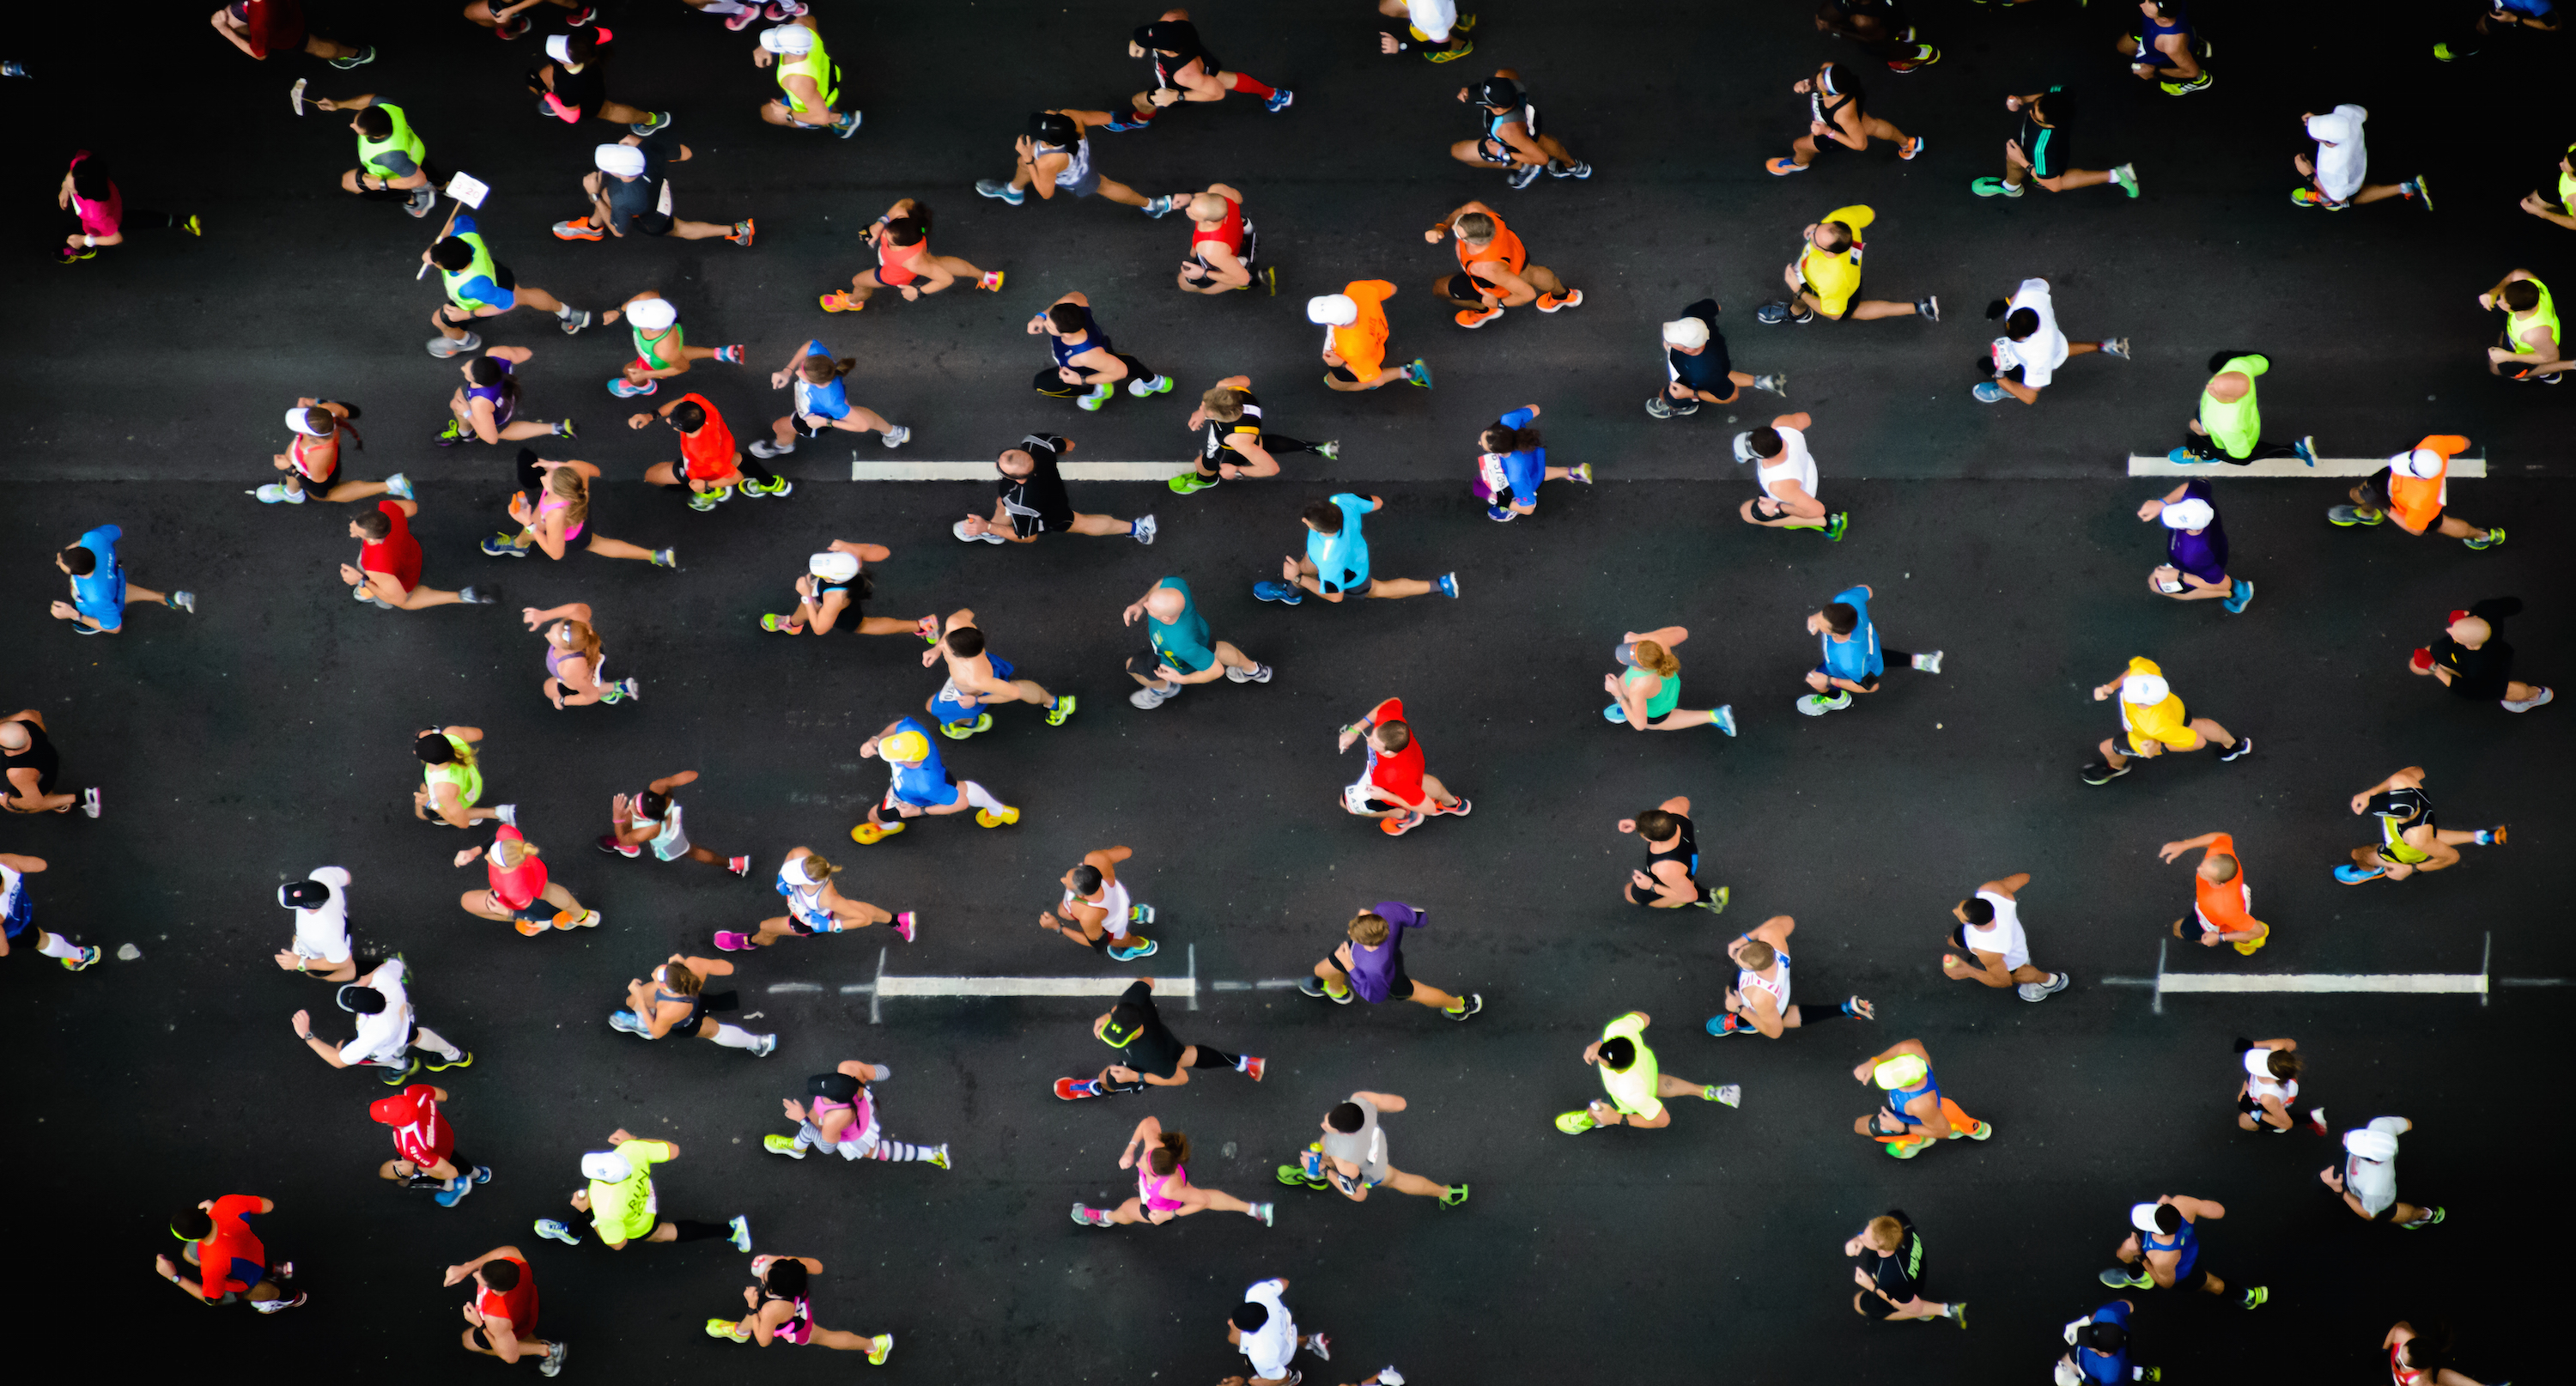 Mexico City Marathon Disqualified Over 5,000 Runners for Being Cheating Cheaters